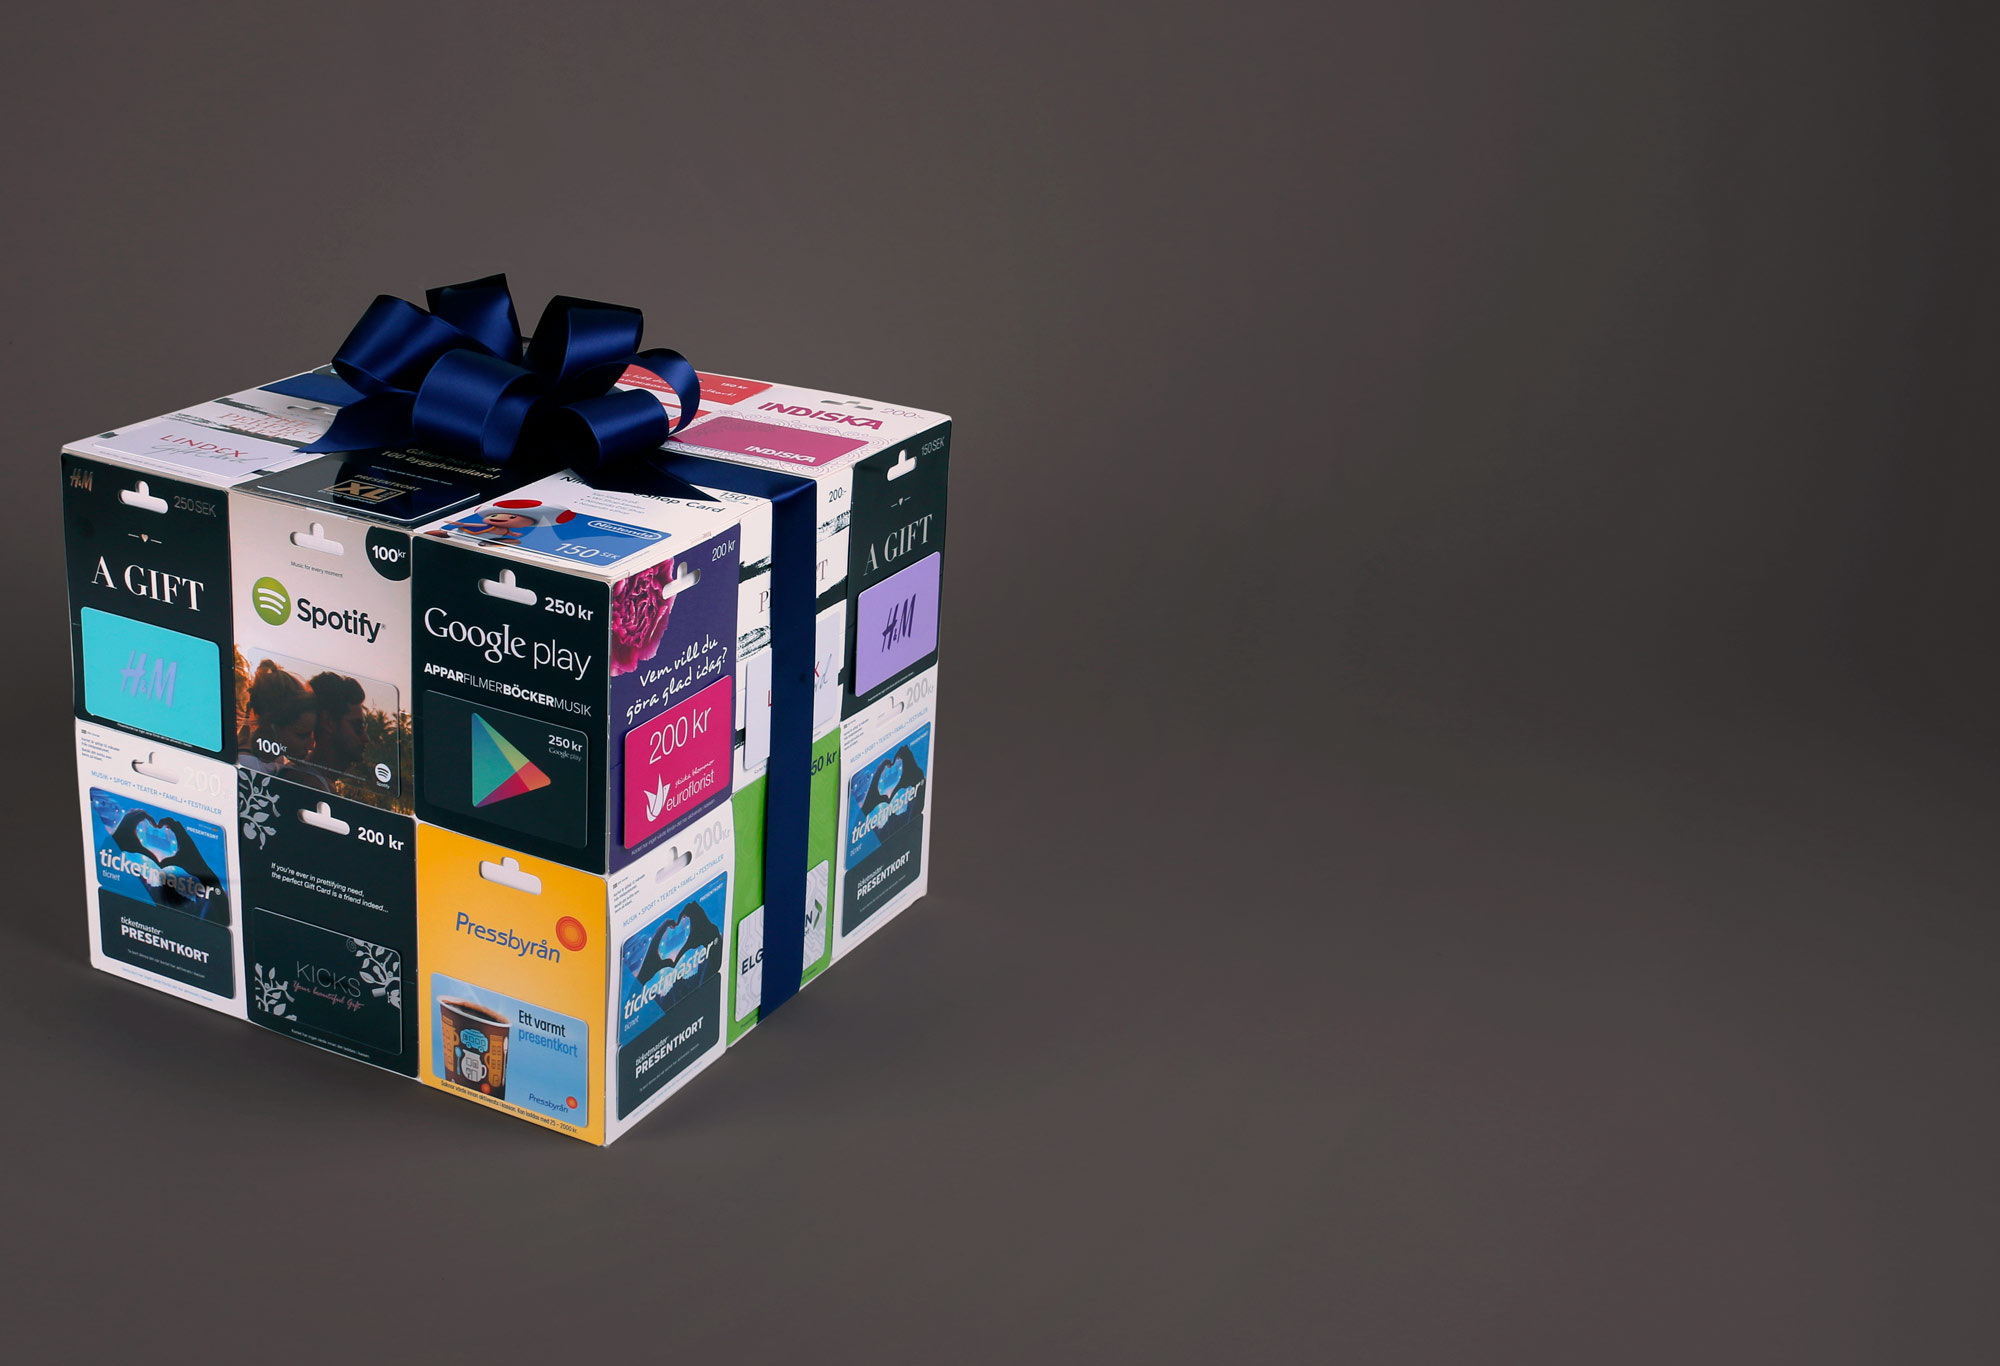 Your product becomes the perfect gift